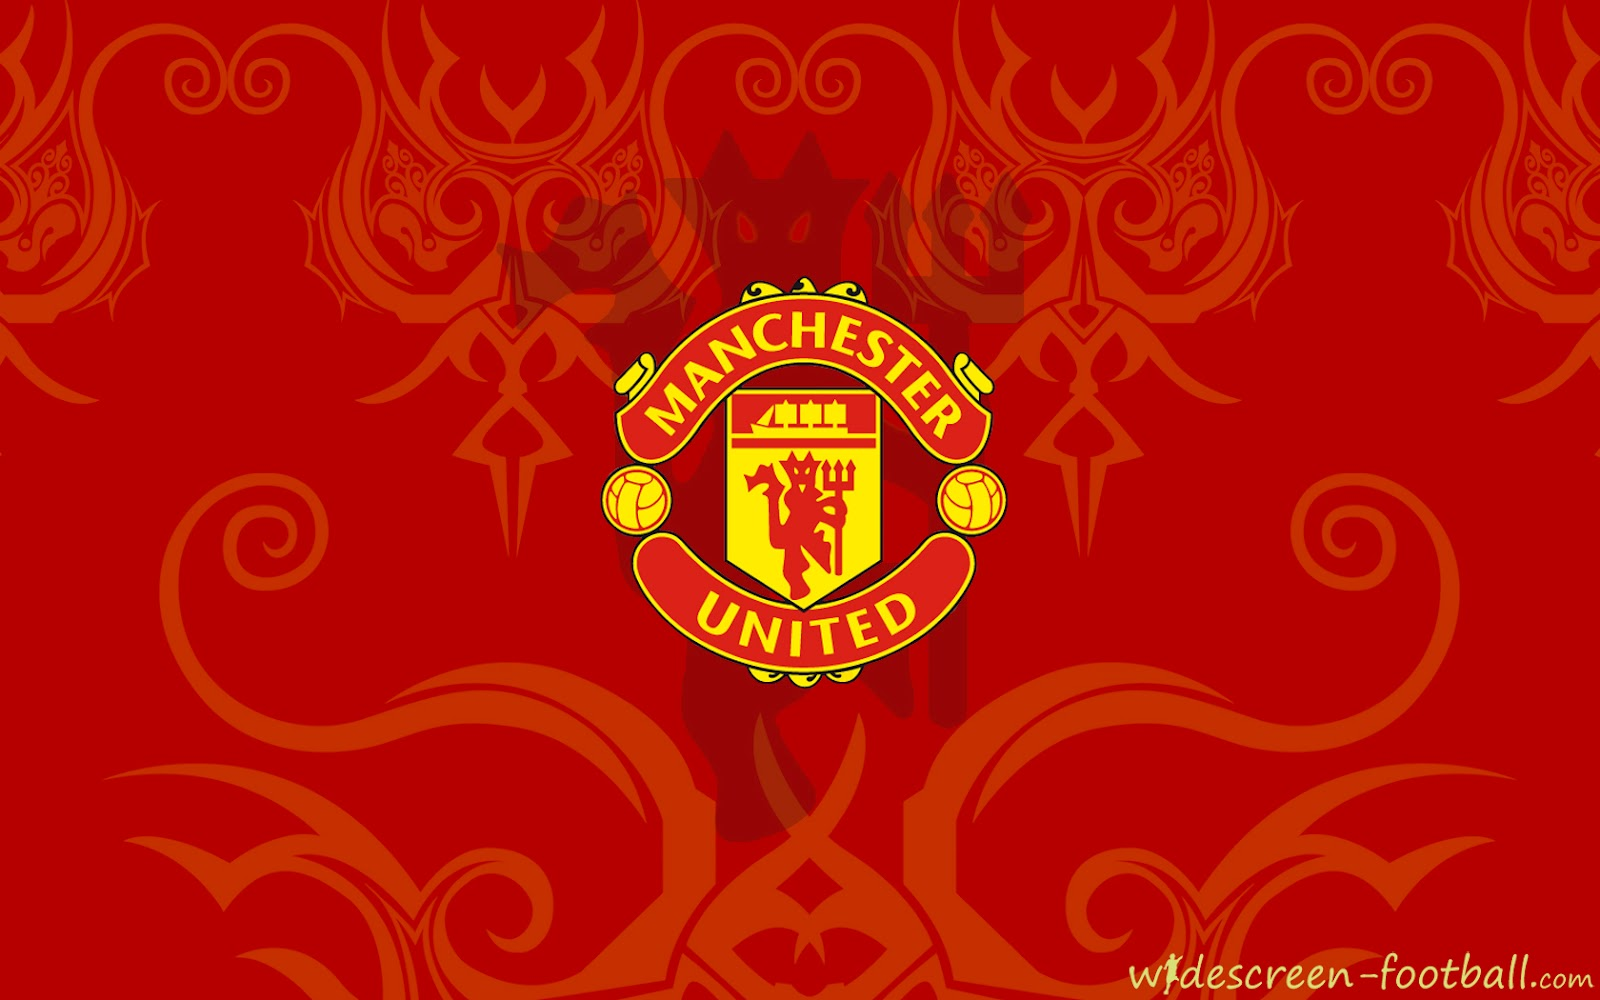 manchester united beautiful logo wallpaper manchester united